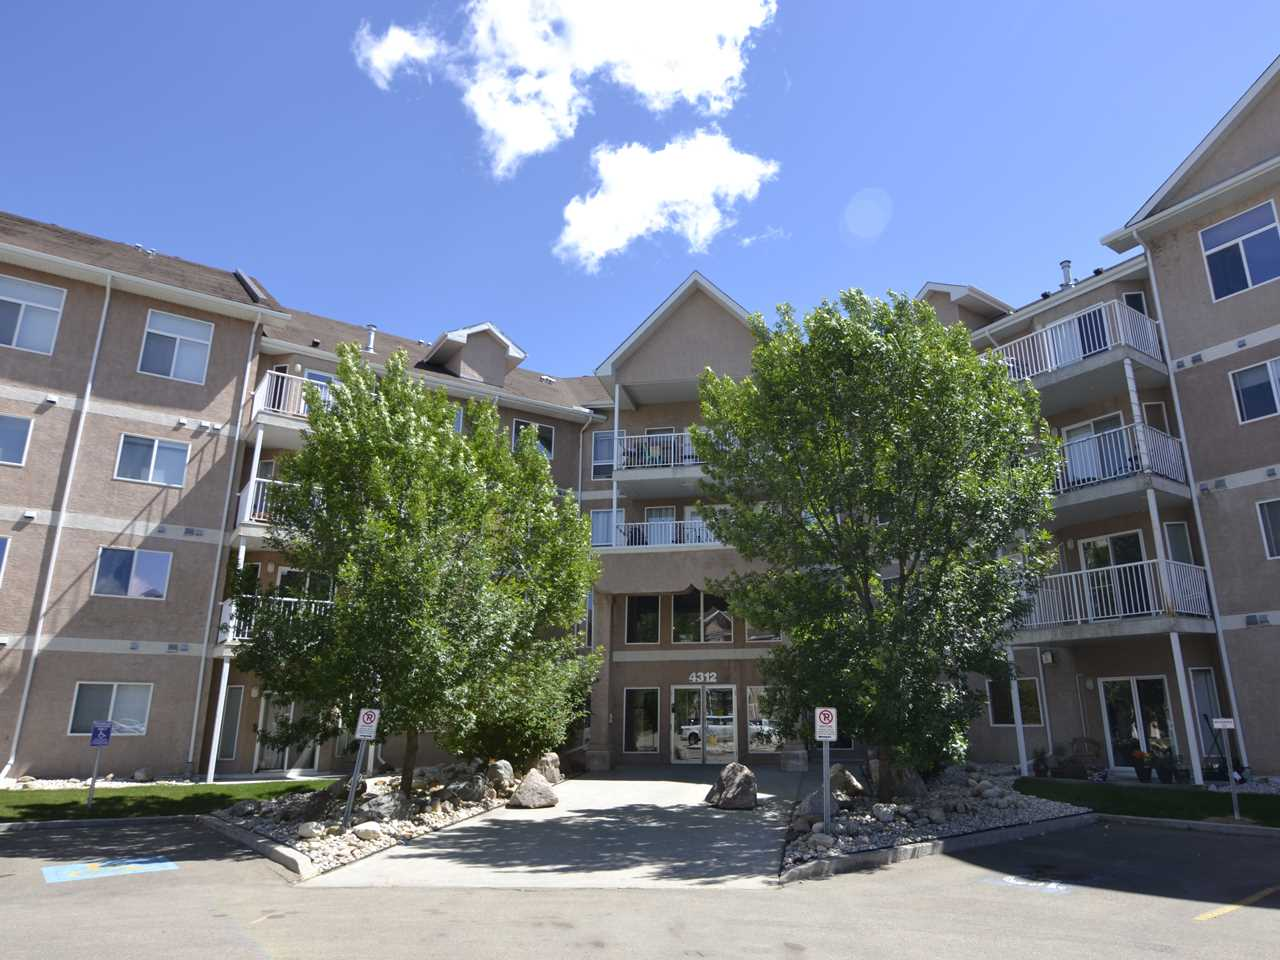 This is the ultimate property for a walkable lifestyle - only a hop and a skip to the Clareview Rec Centre, the Clareview LRT station, and shopping and restaurants. And it has great access to the Manning Freeway and Anthony Henday Drive! The Estates at Clareview is home to a fabulous amenities centre with full gym, pool table and shuffleboard games room, and an event room you can rent out for those family functions. And there are outdoor putting greens to keep you practiced! If that wasn't enough on it's own, you'll love this ground floor unit with it's 9' ceilings, open flow floorplan, natural gas fireplace, and big kitchen! There is a master suite that is HUGE, with a closet to match and ensuite bathroom, as well as a second bedroom and bathroom and den/storage room. This unit has park views from its patio AND there is underground parking and storage cage AND there is insuite laundry! It truly is the perfect place. Don't wait to come and check it out for yourself!